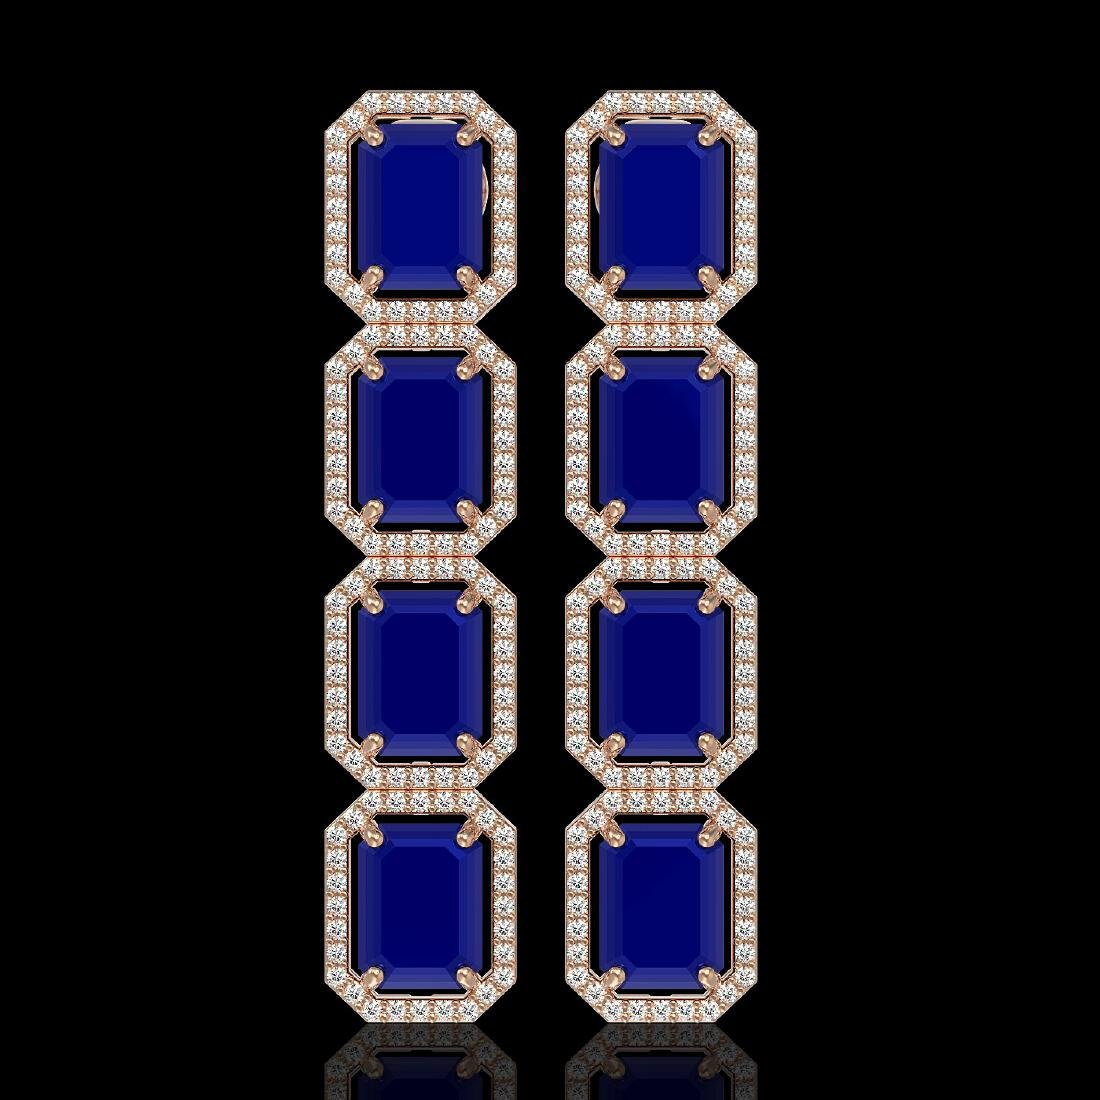 20.59 CTW Sapphire & Diamond Halo Earrings 10K Rose